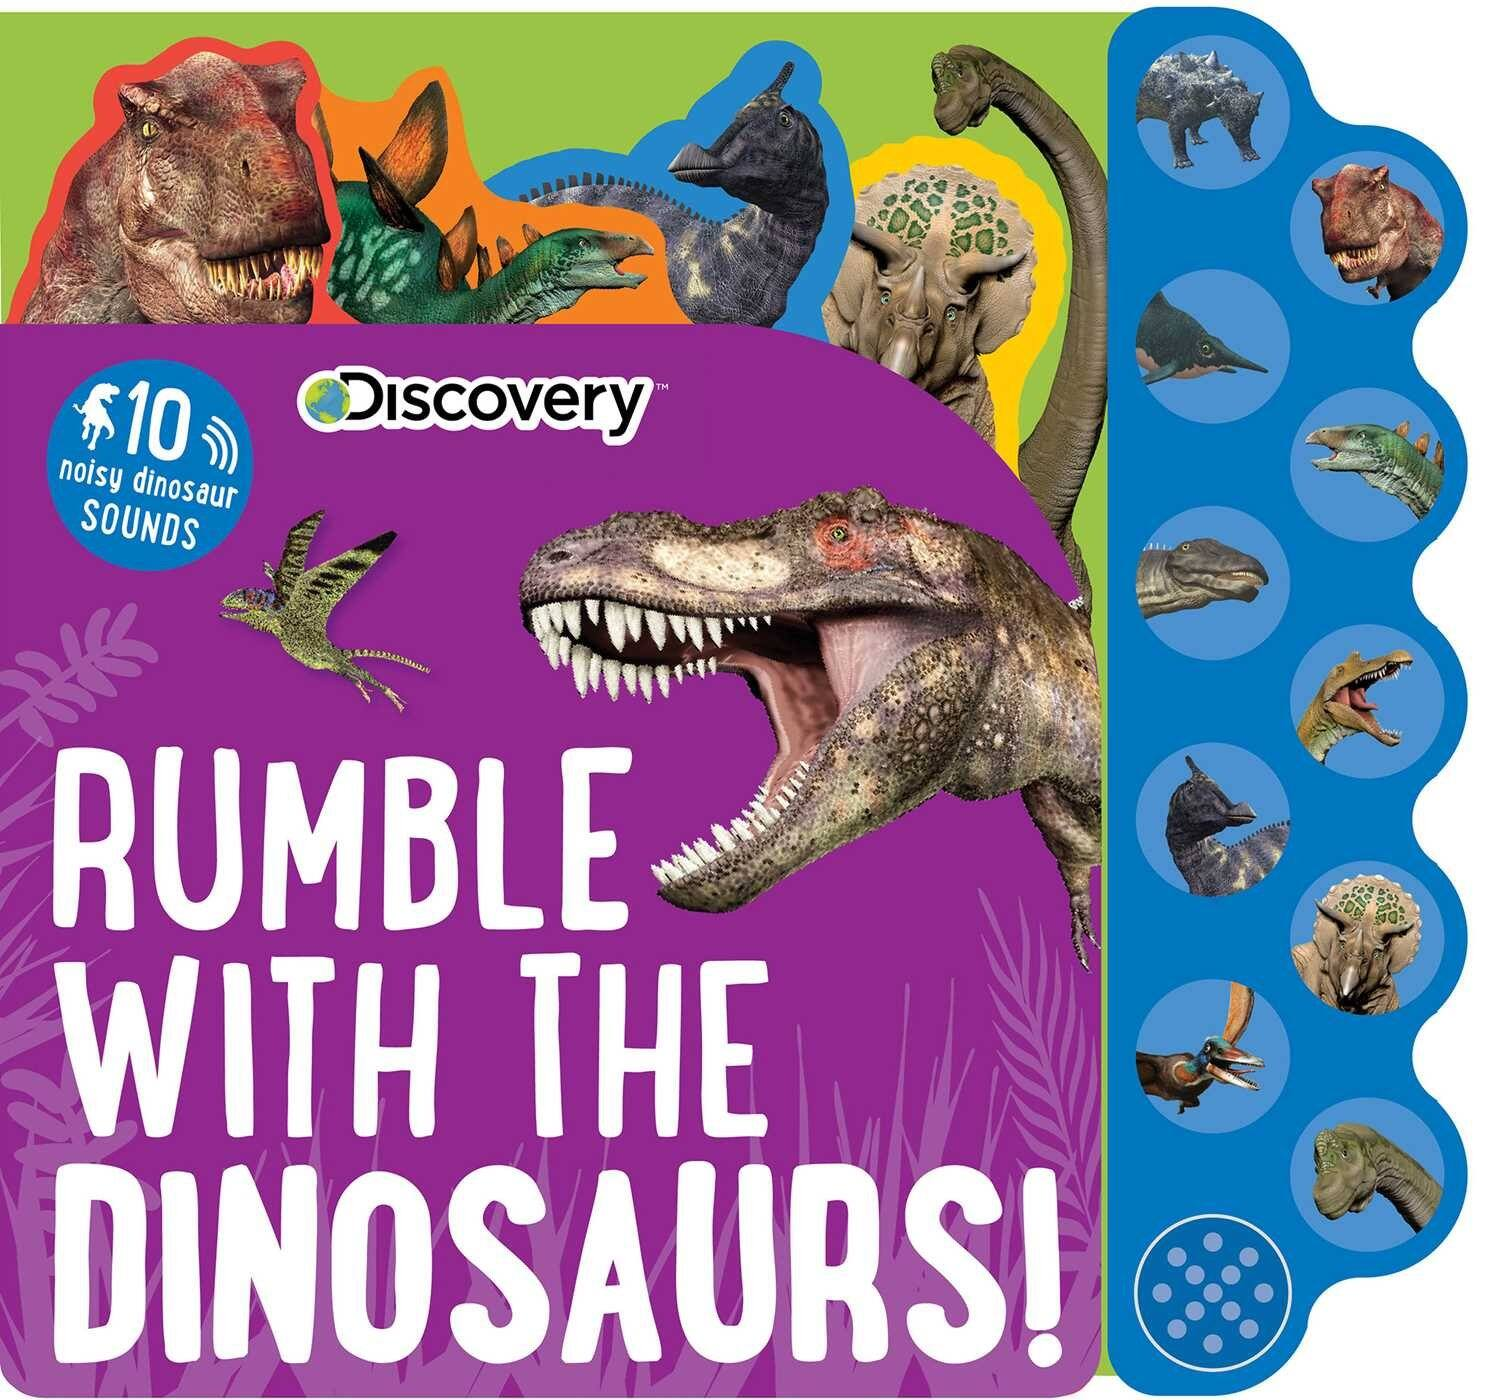 Discovery: Rumble with the Dinosaurs! (10-Button Sound Book) $5.85 + Free Shipping w/ Amazon Prime or On Orders $25+